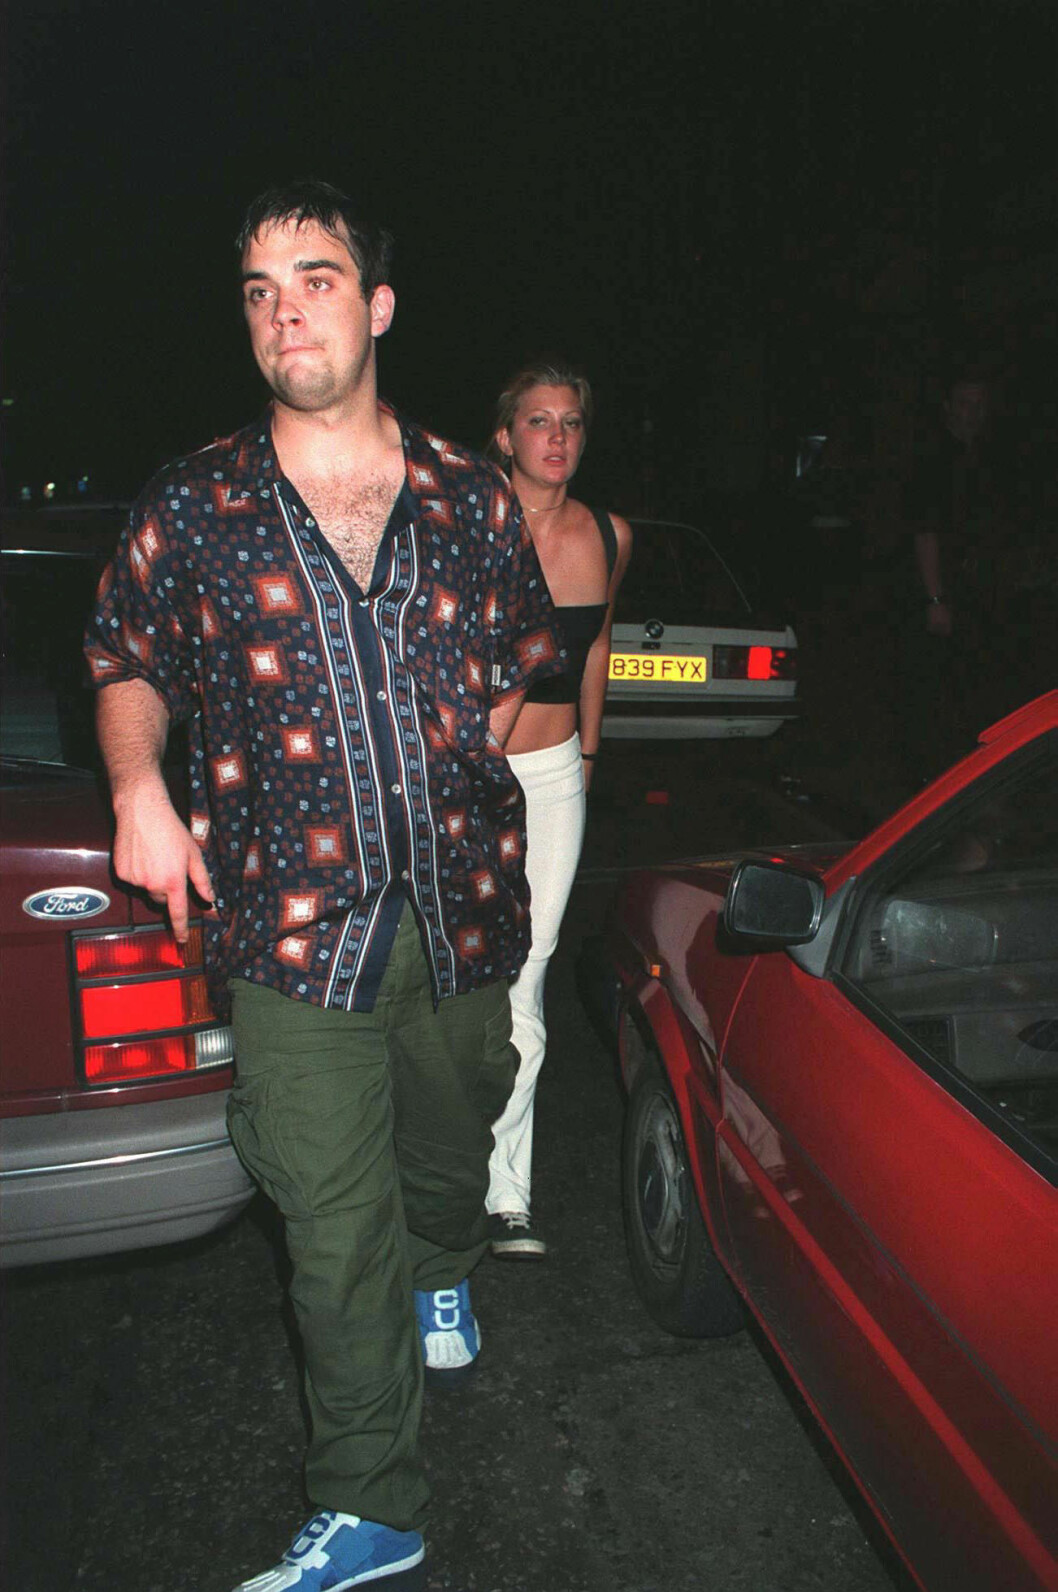 ROBBIE WILLIAMS WITH MYSTERY WOMAN